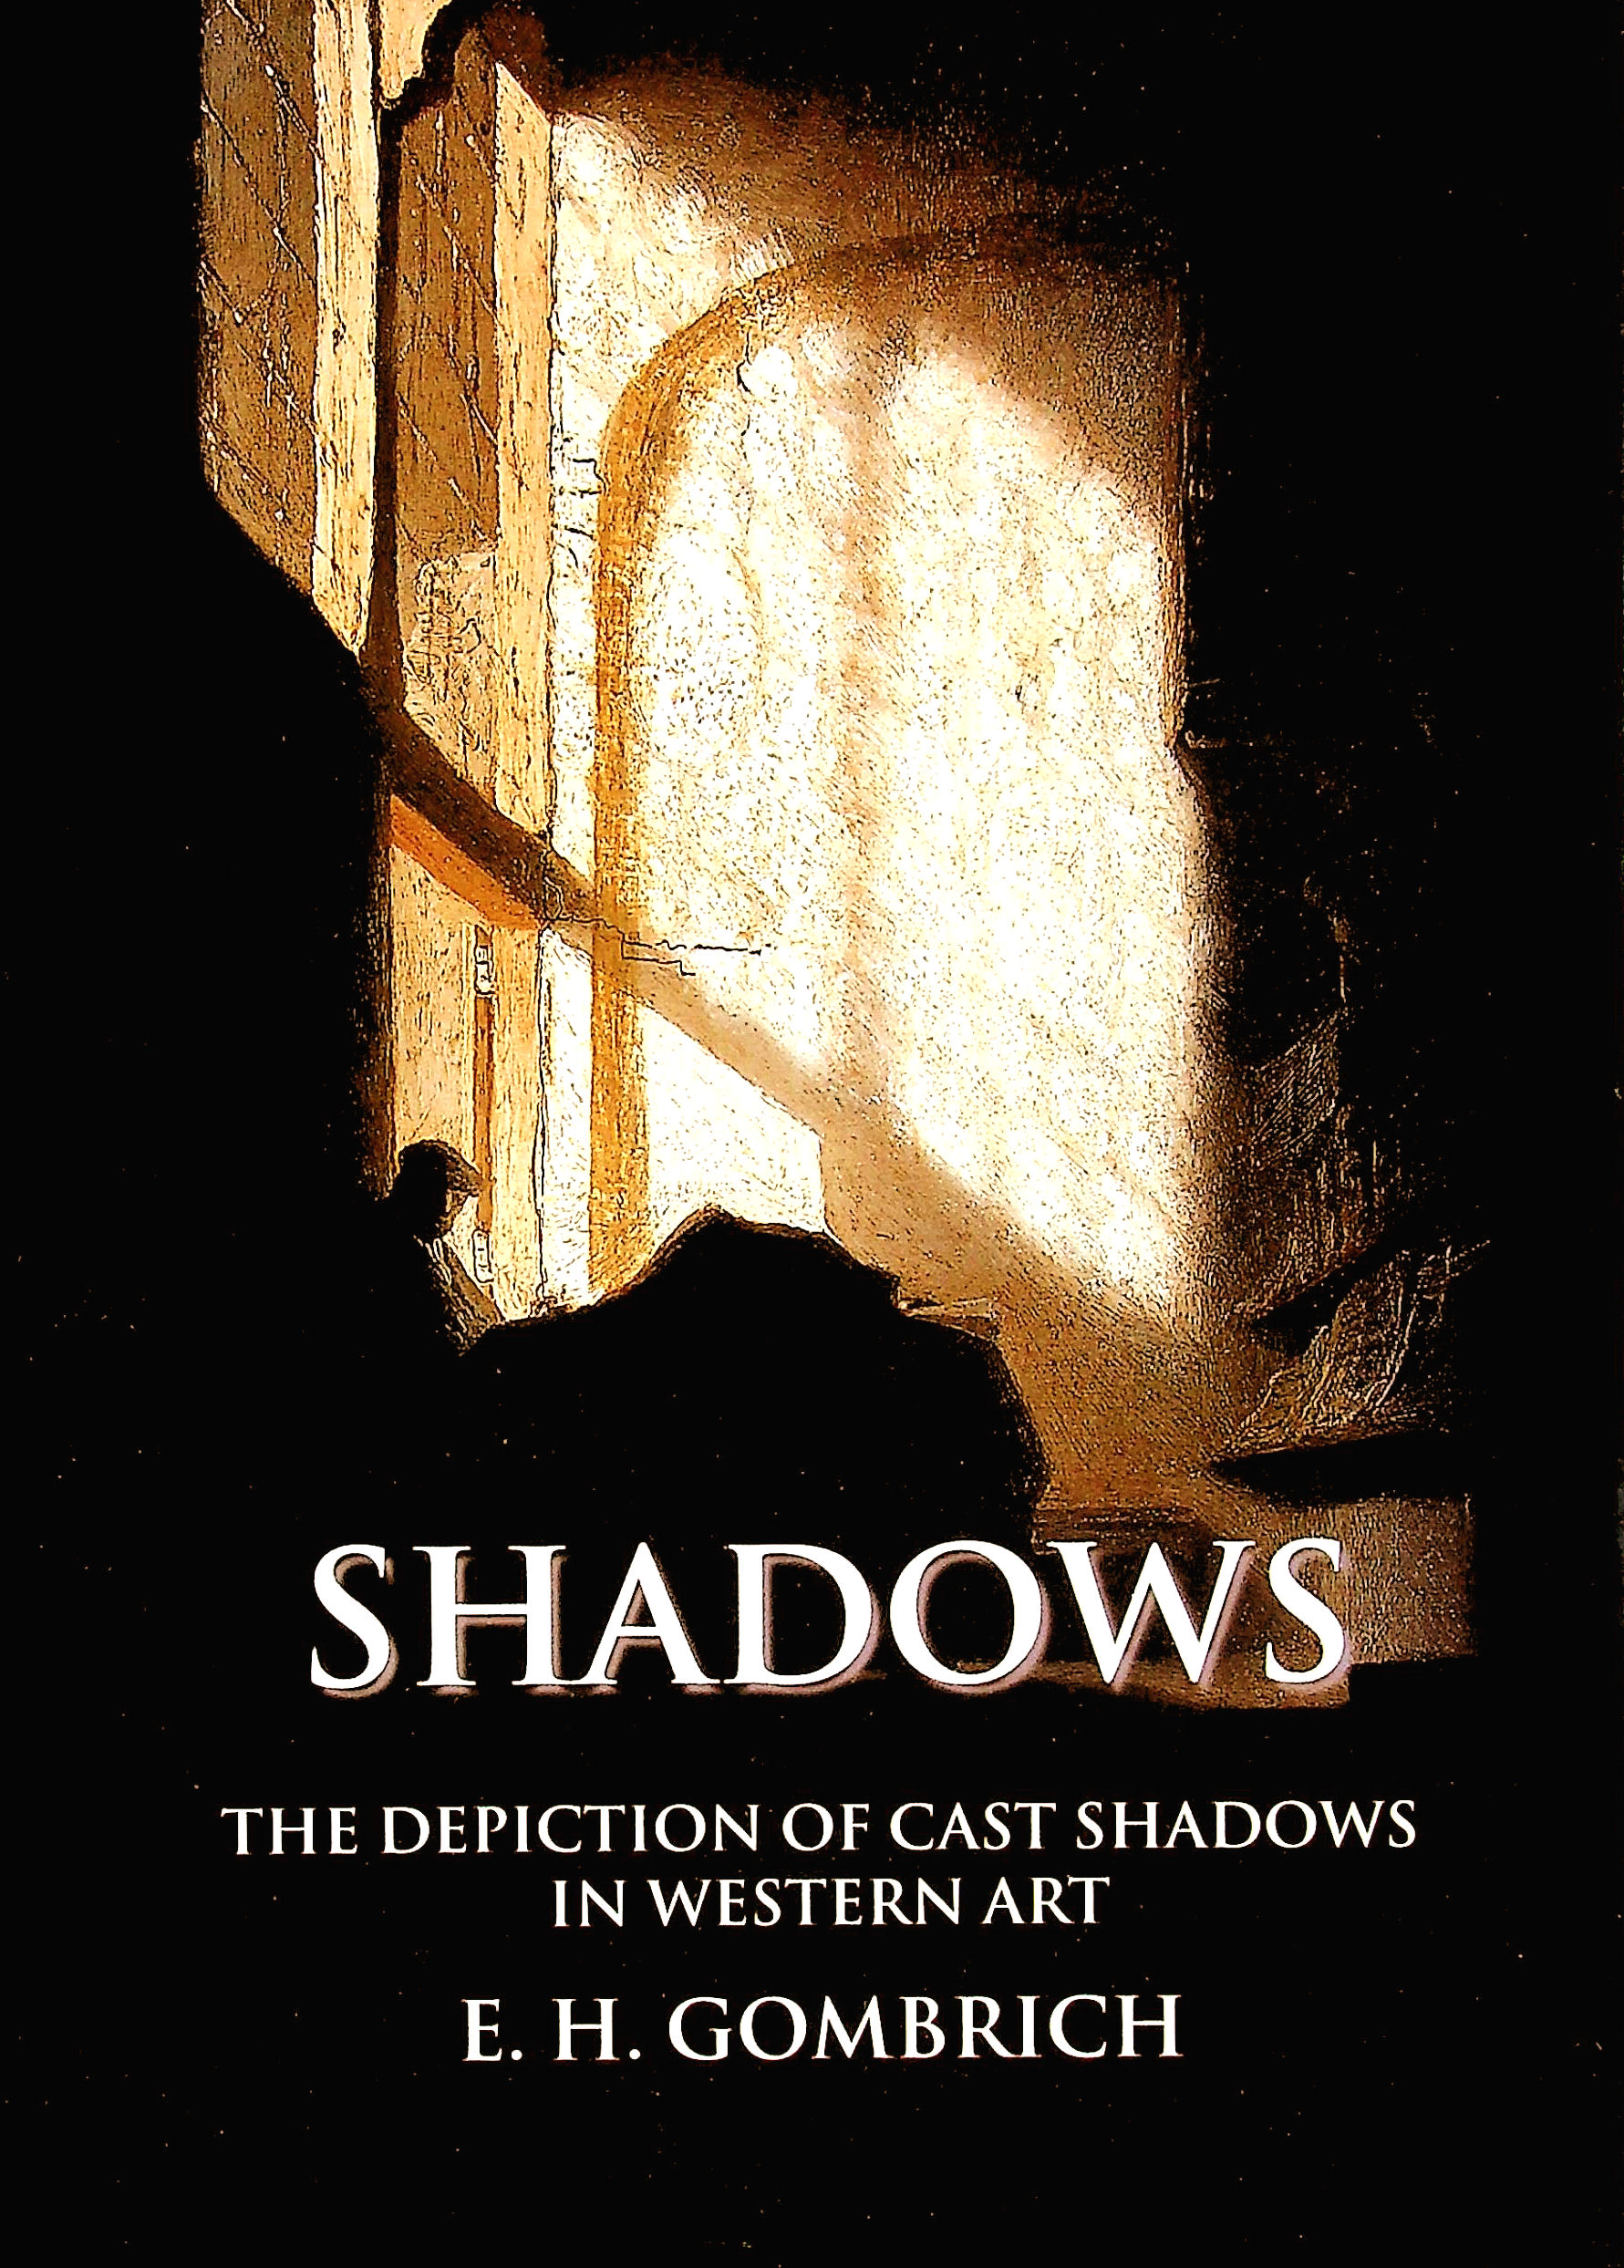 Image for Shadows: The Depiction of Cast Shadows in Western Art